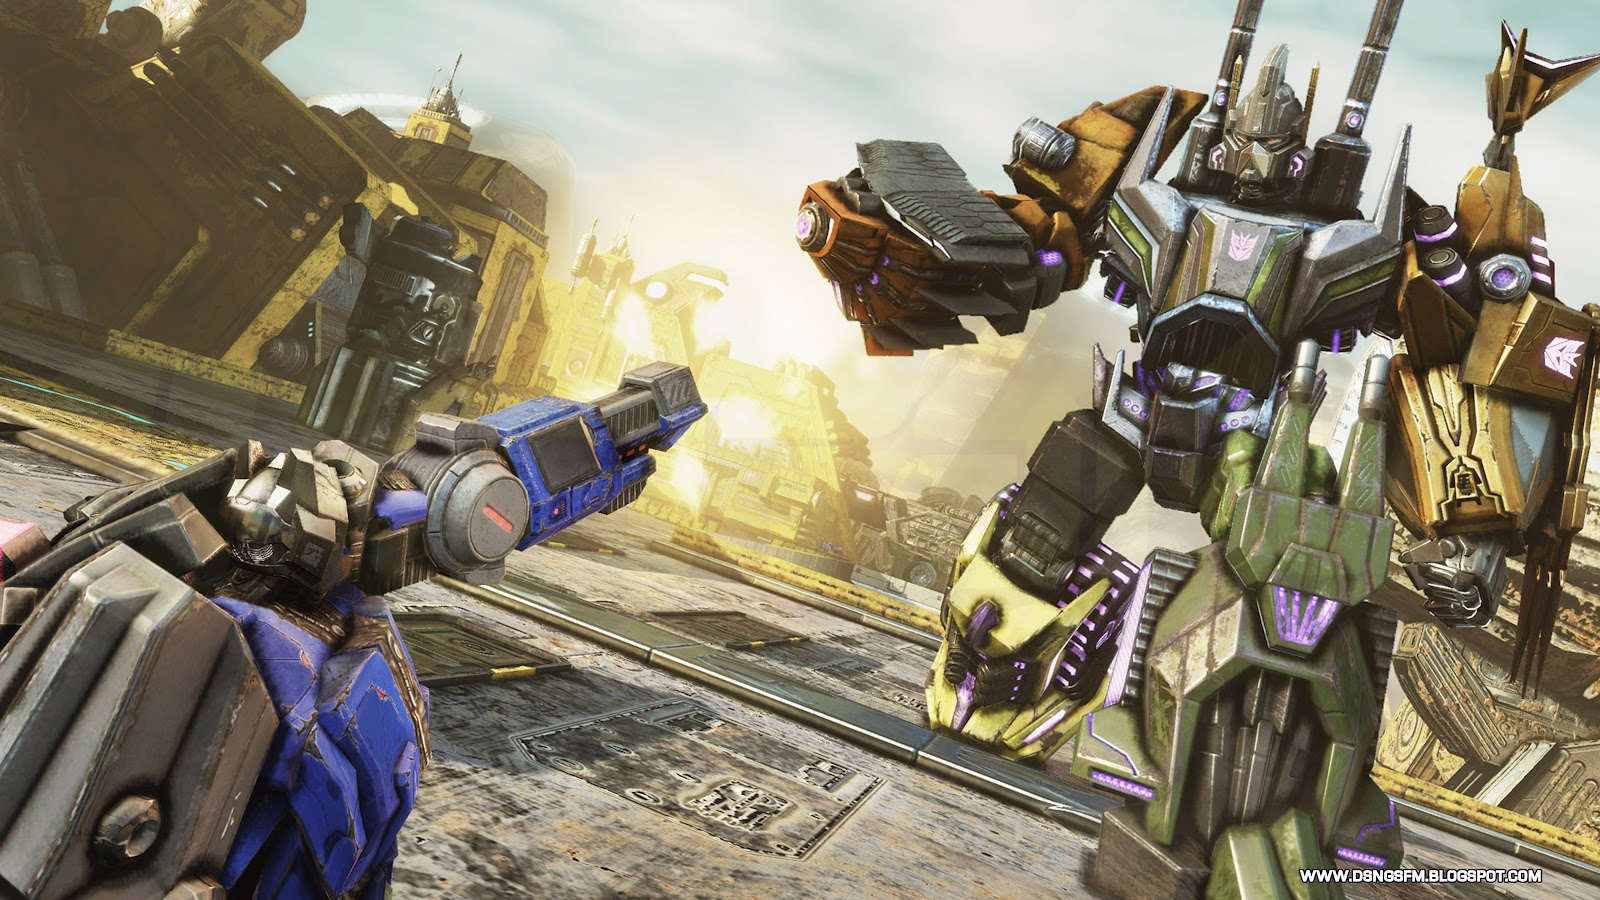 Max Payne 2 The Fall Of Max Payne Wallpaper Dsng S Sci Fi Megaverse Transformers Fall Of Cybertron